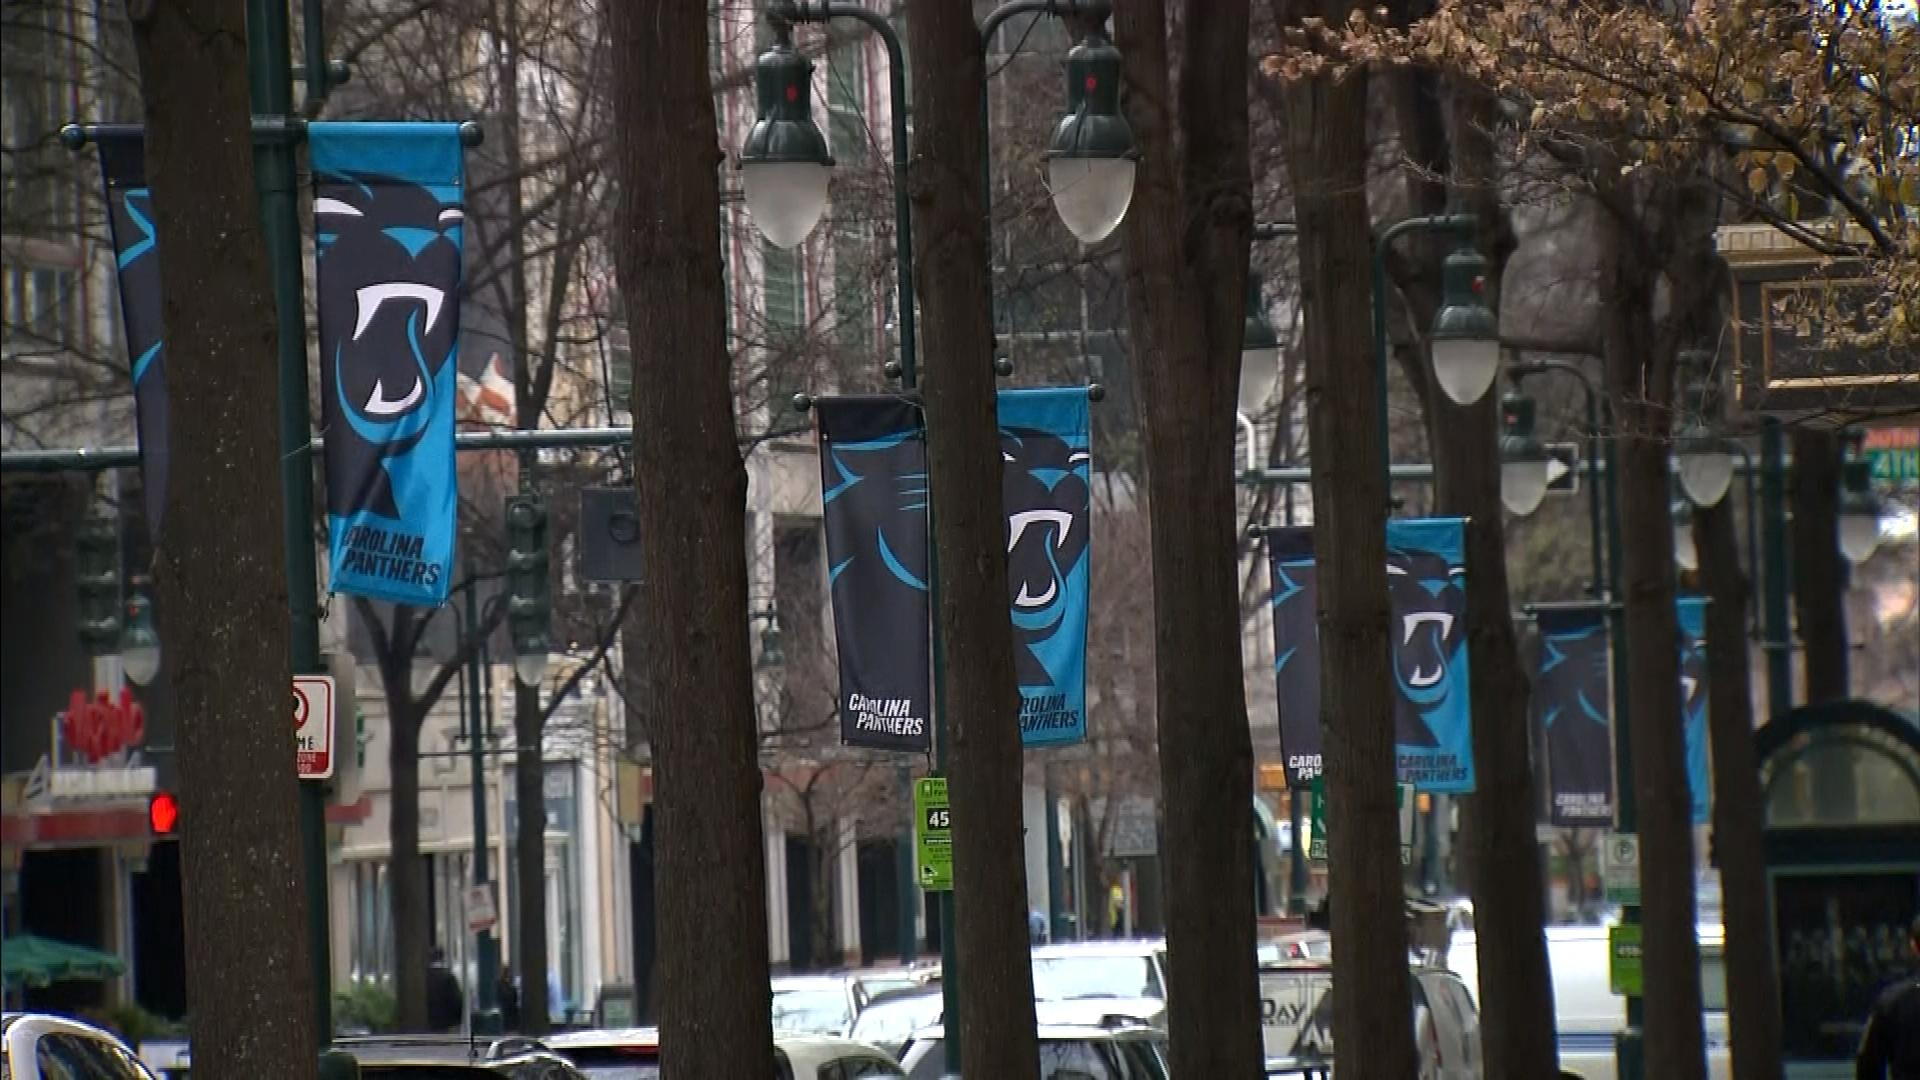 Panthers banners in Charlotte (credit; CBS)